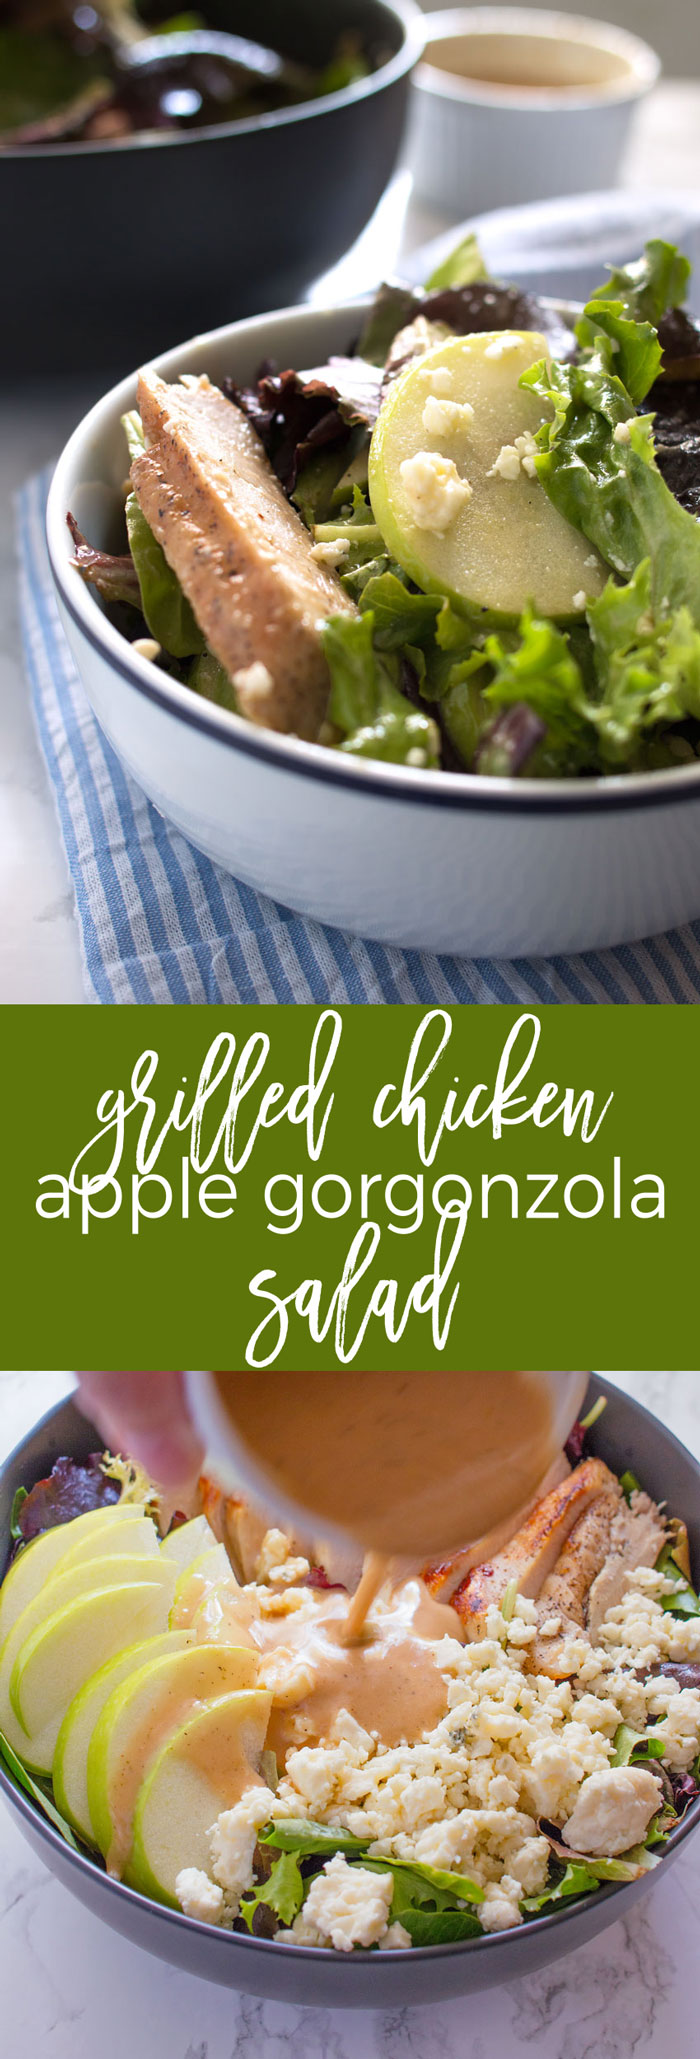 Delicious and Easy Lunch Ideas! Grilled Chicken Salad with Apples and Gorgonzola Cheese will be your new favorite go-to lunch salad!